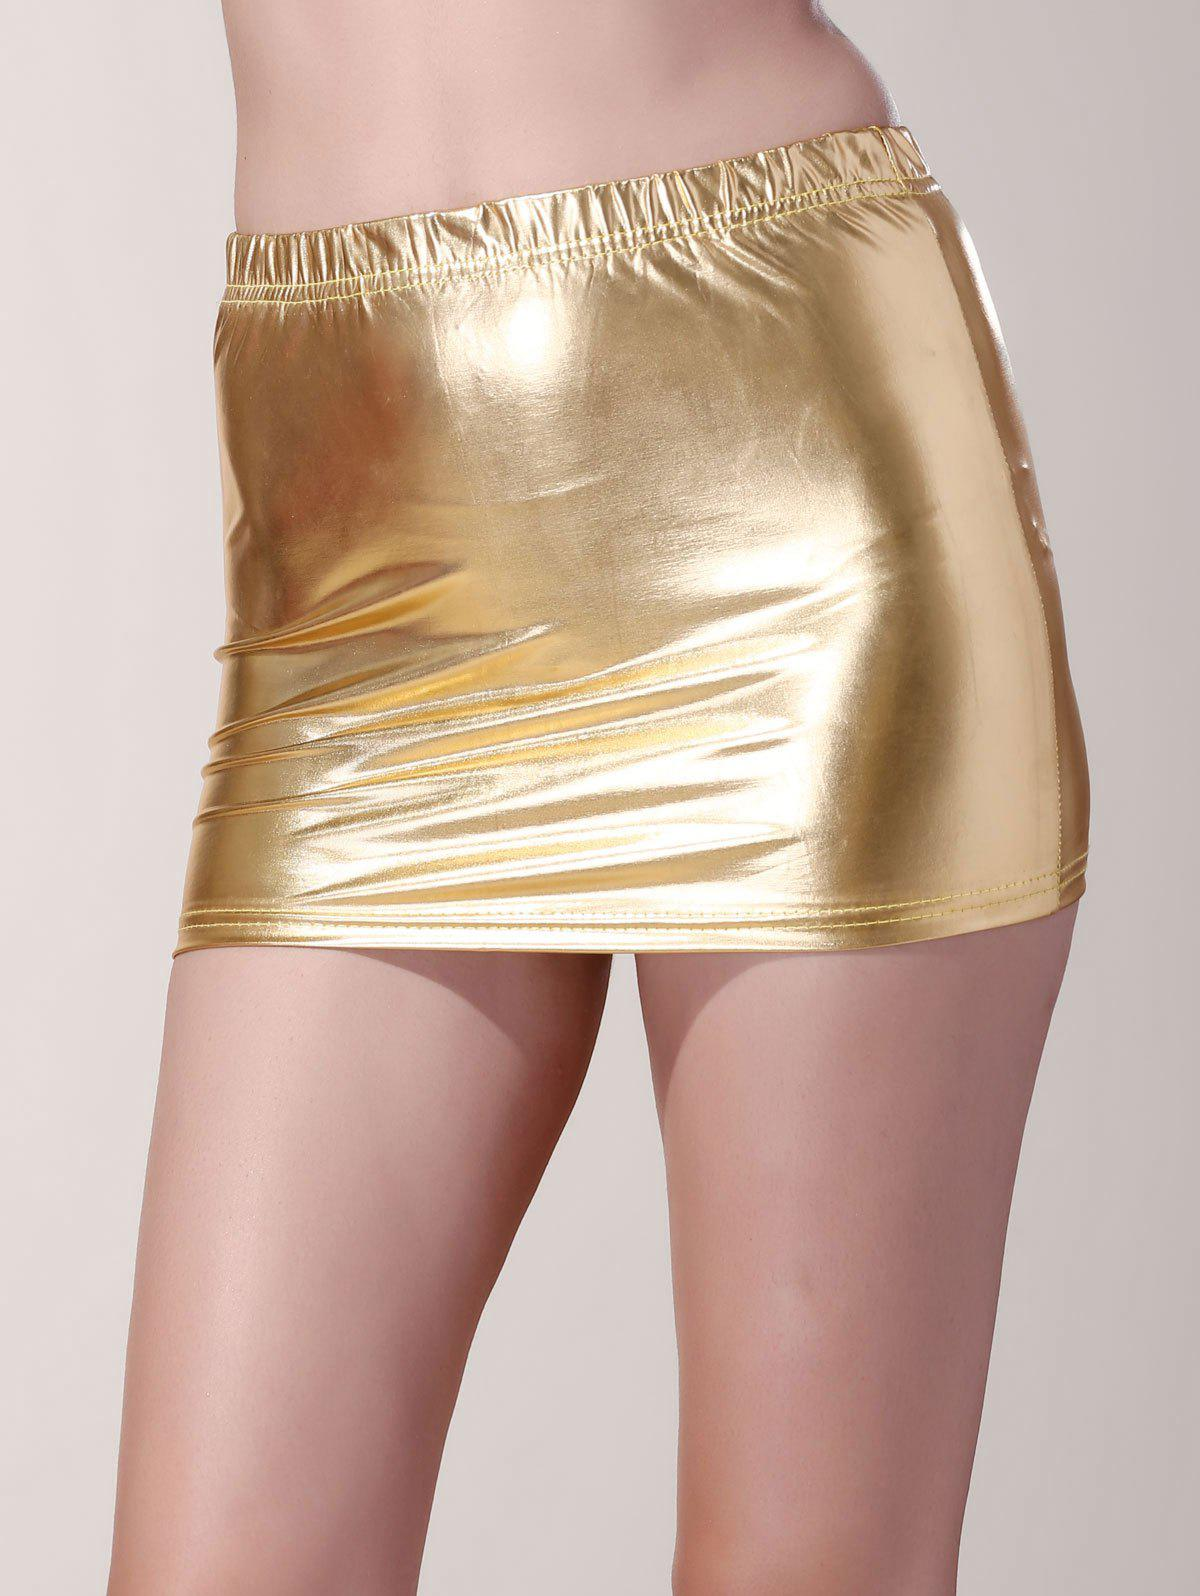 Stylish Low-Waist Solid Color Faux Leather Bodycon Mini Skirt For Women - GOLDEN ONE SIZE(FIT SIZE XS TO M)